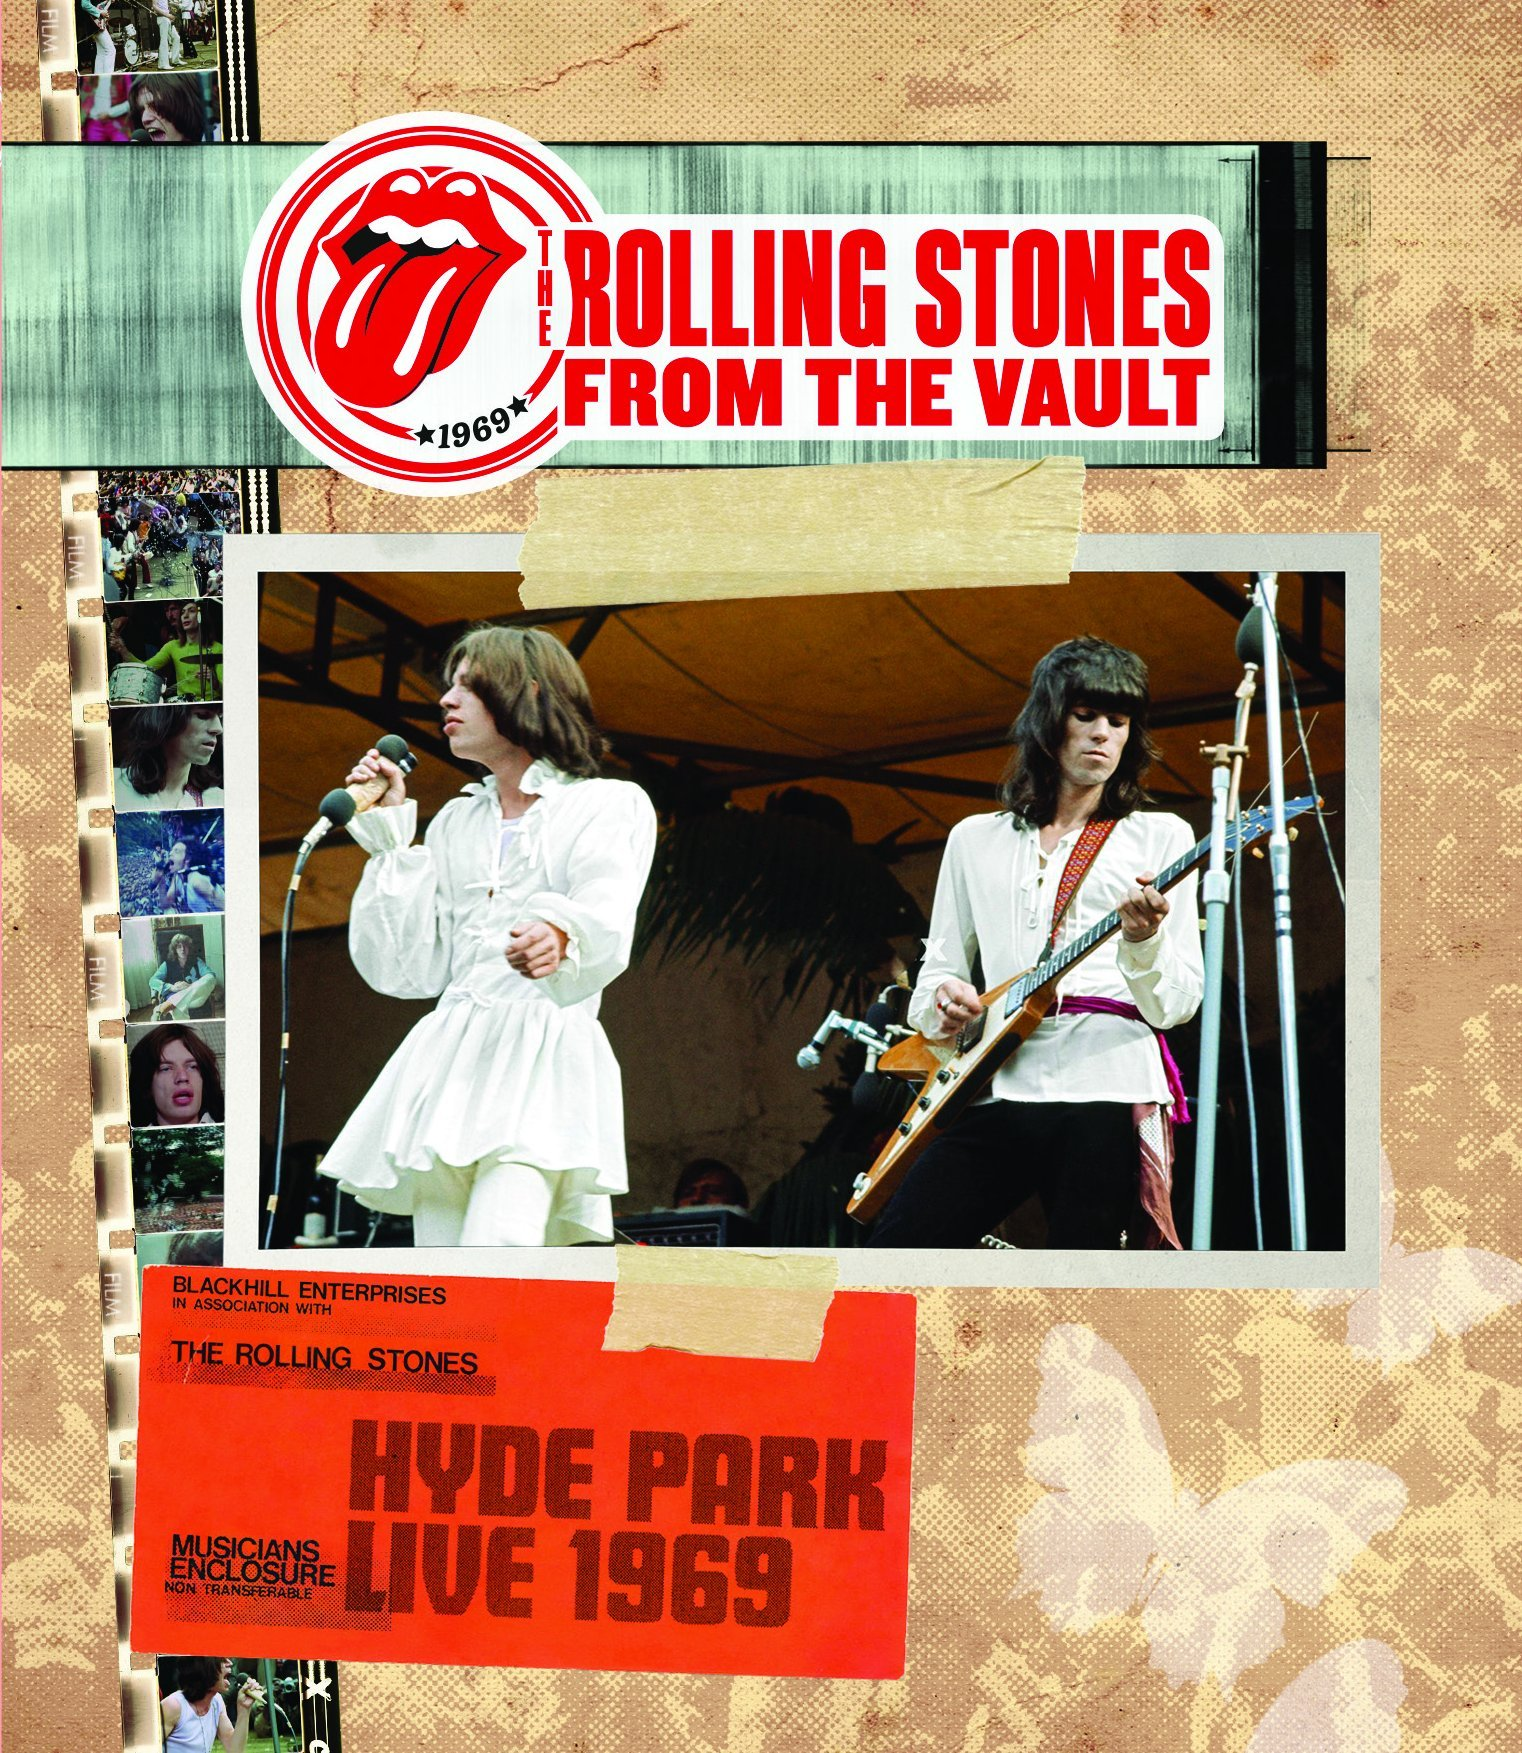 DVD : The Rolling Stones - The Rolling Stones From the Vault: Hyde Park 1969 (DVD)